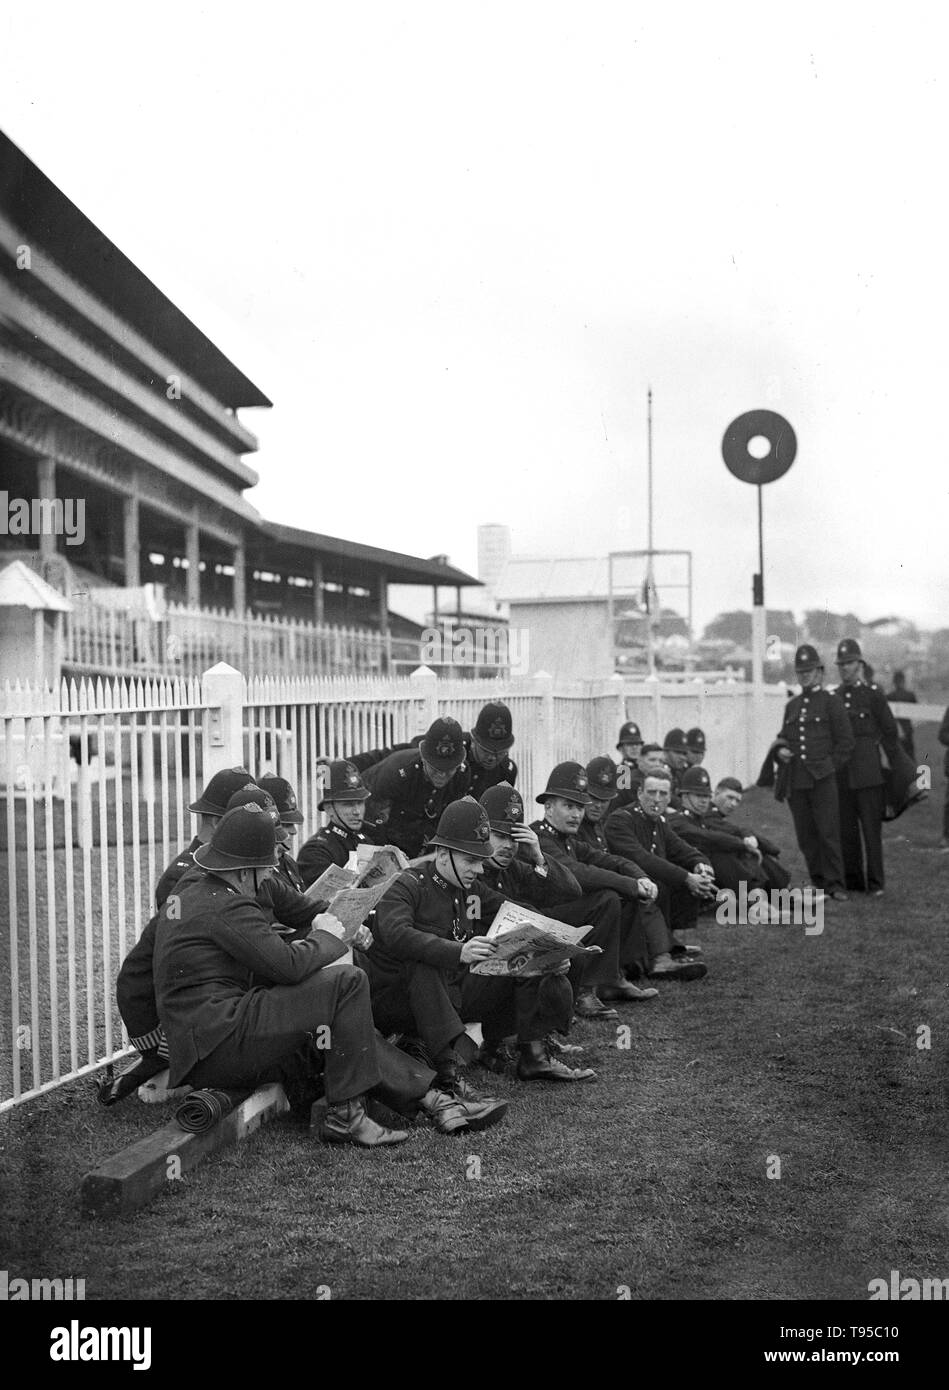 British policemen checking for racing tips at the Epsom Derby races in June 1932 - Stock Image